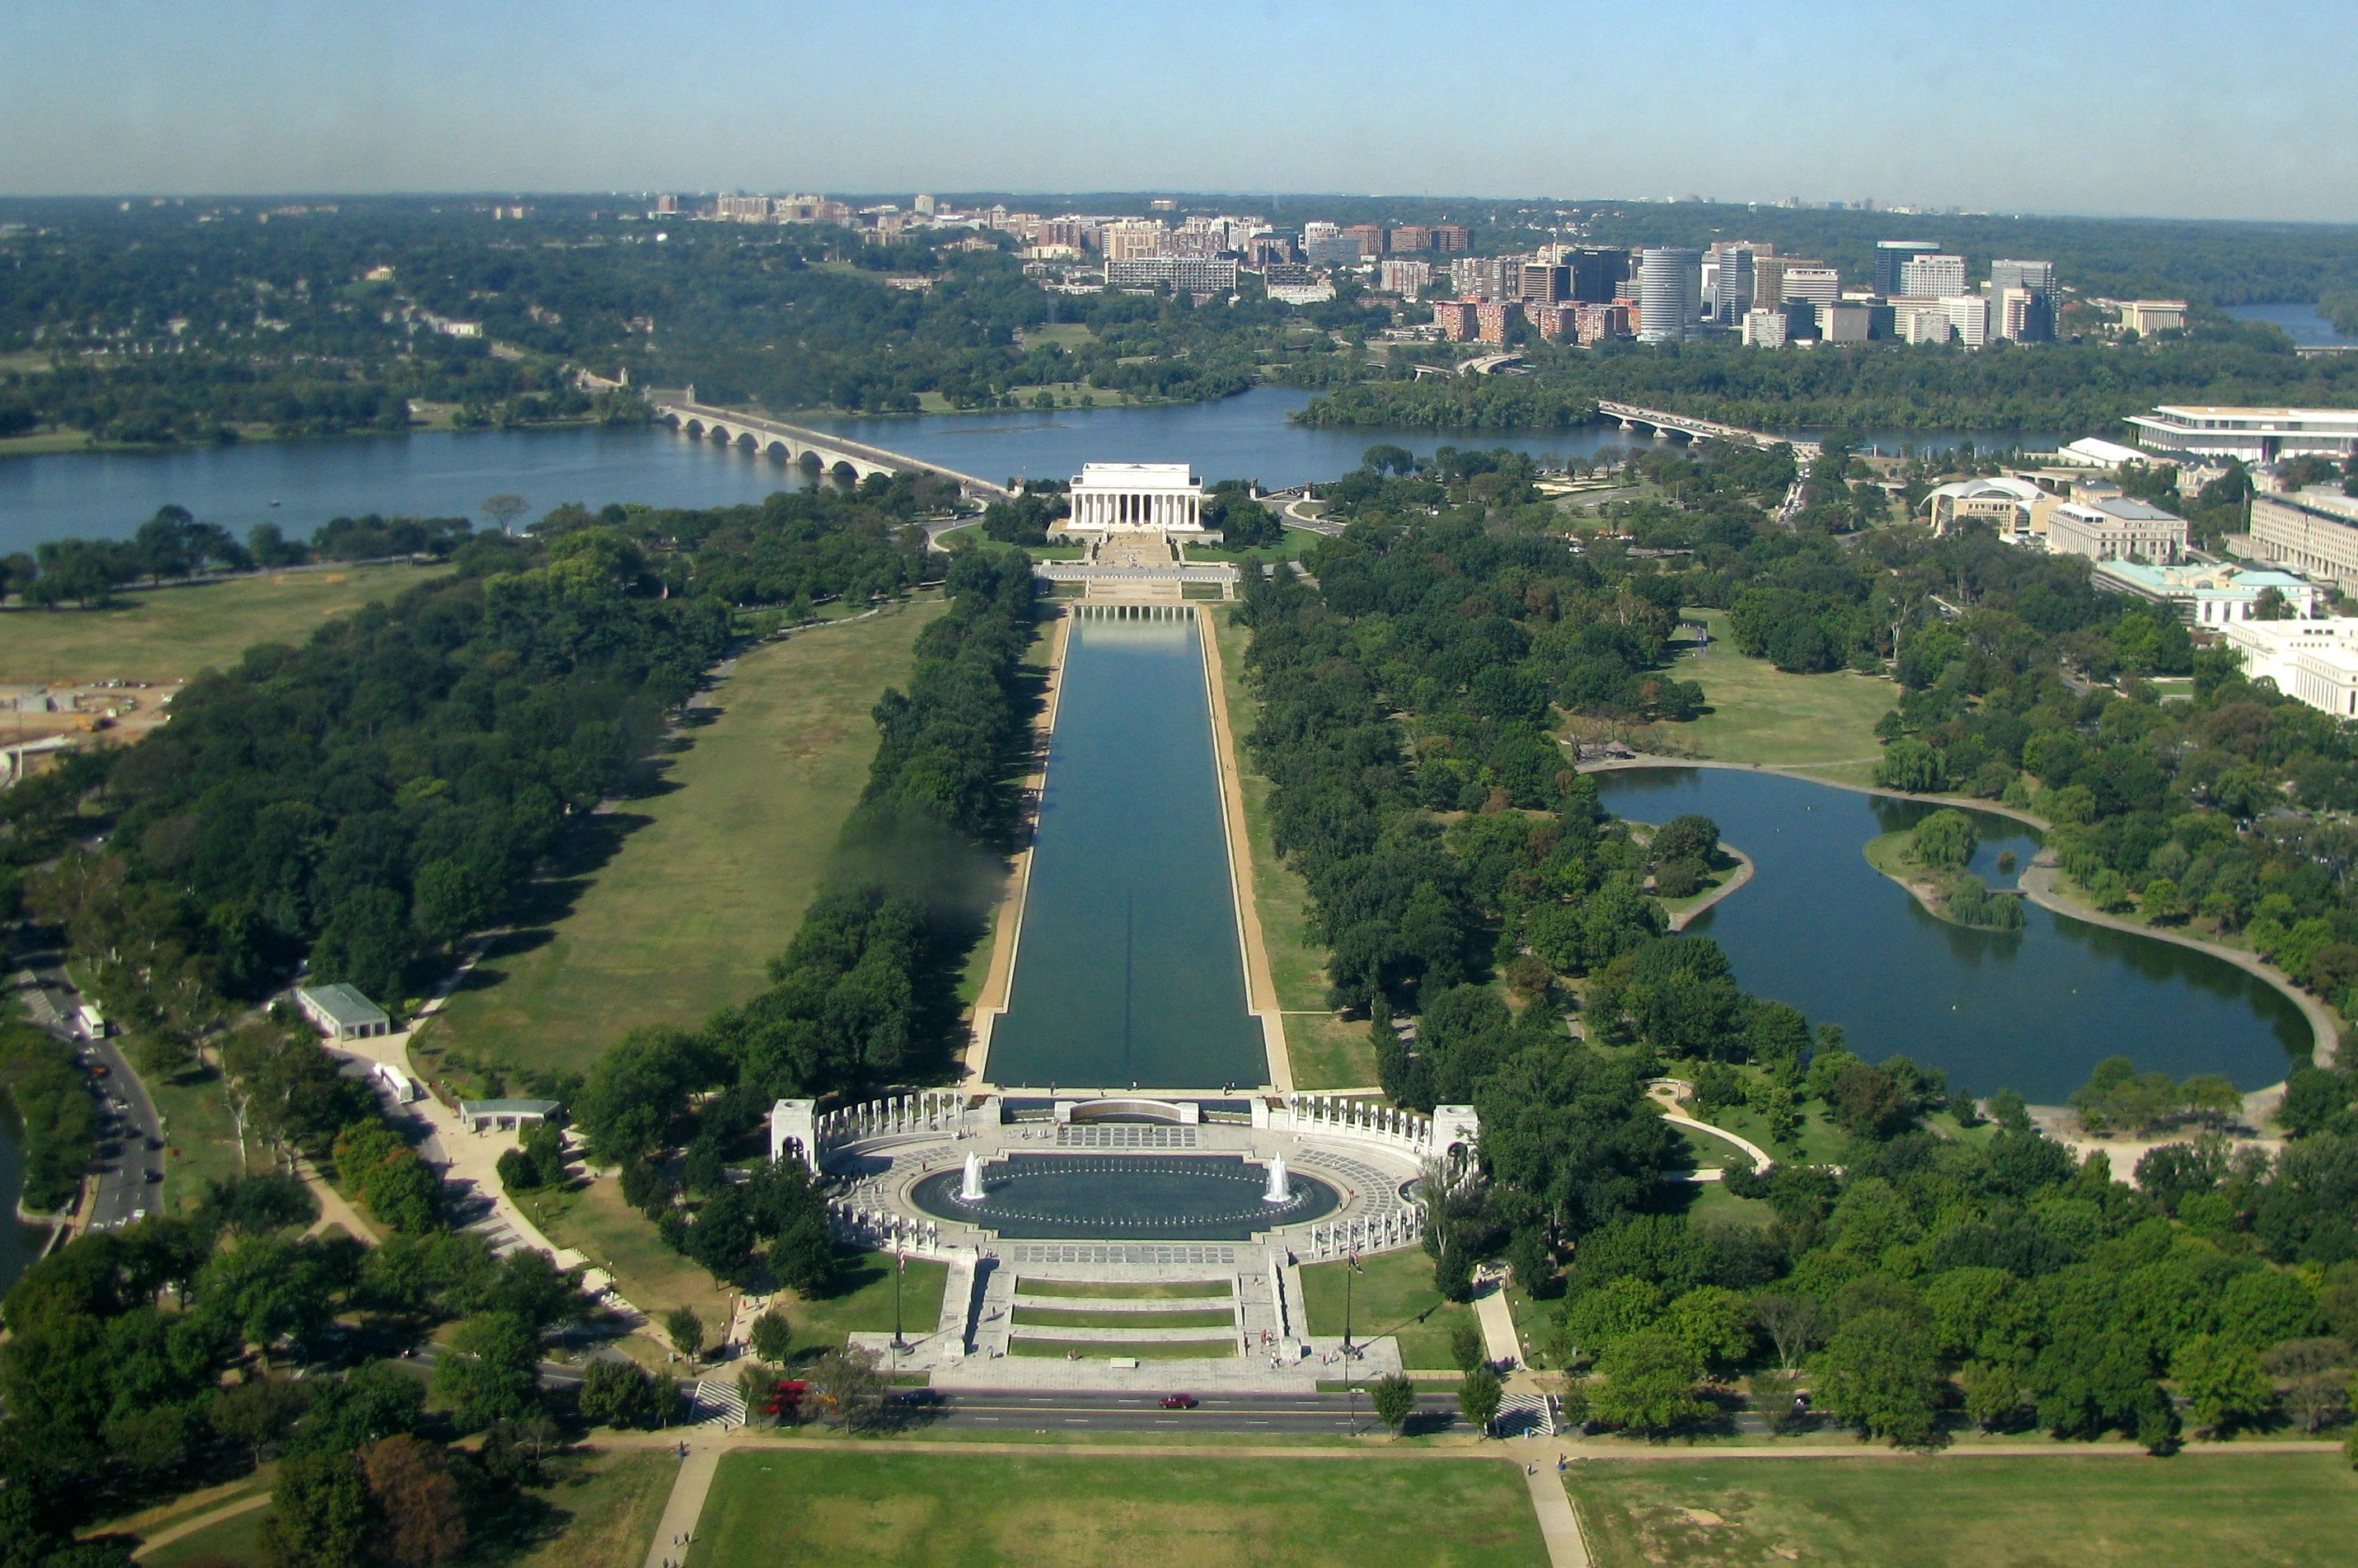 Lincoln Memorial Reflecting Pool, Washington, D.C., US